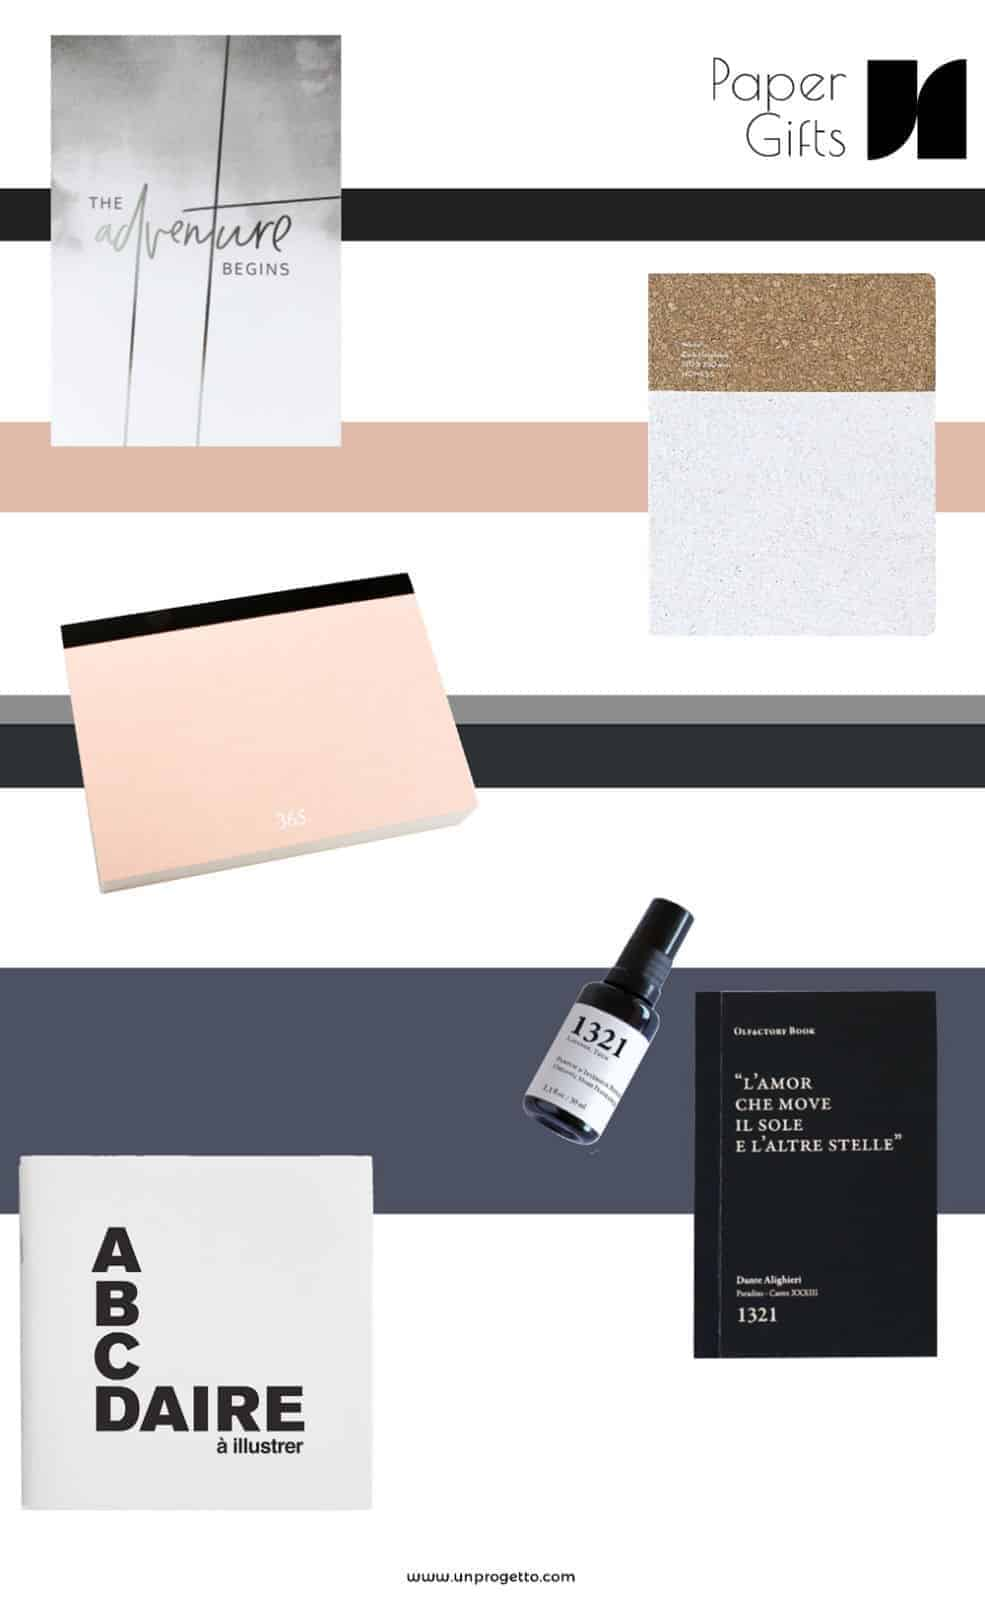 Stationery news and paper gift